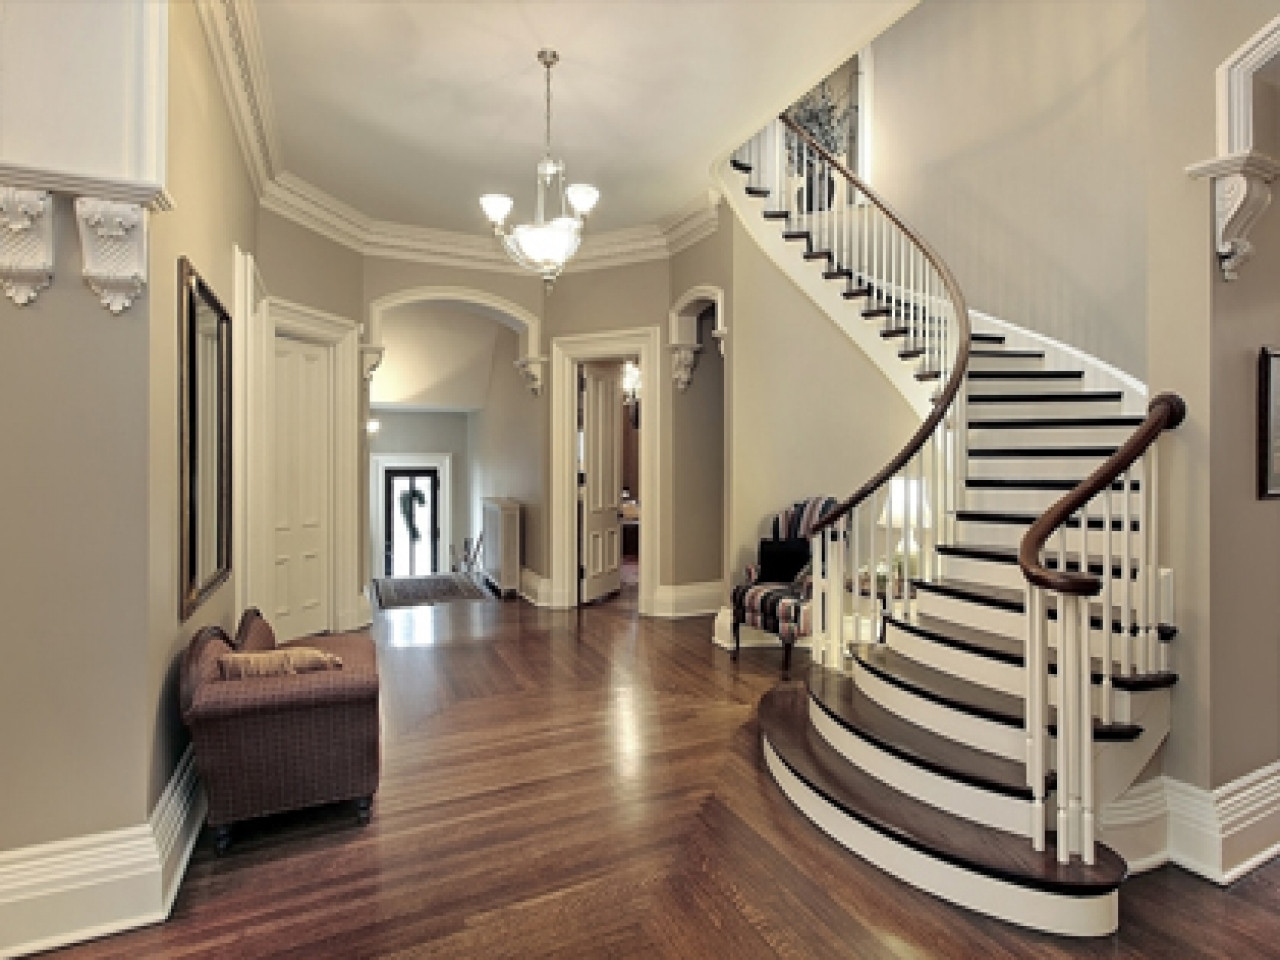 Best ideas about Interior Paint Colors . Save or Pin Painting exterior wood trim most popular interior paint Now.